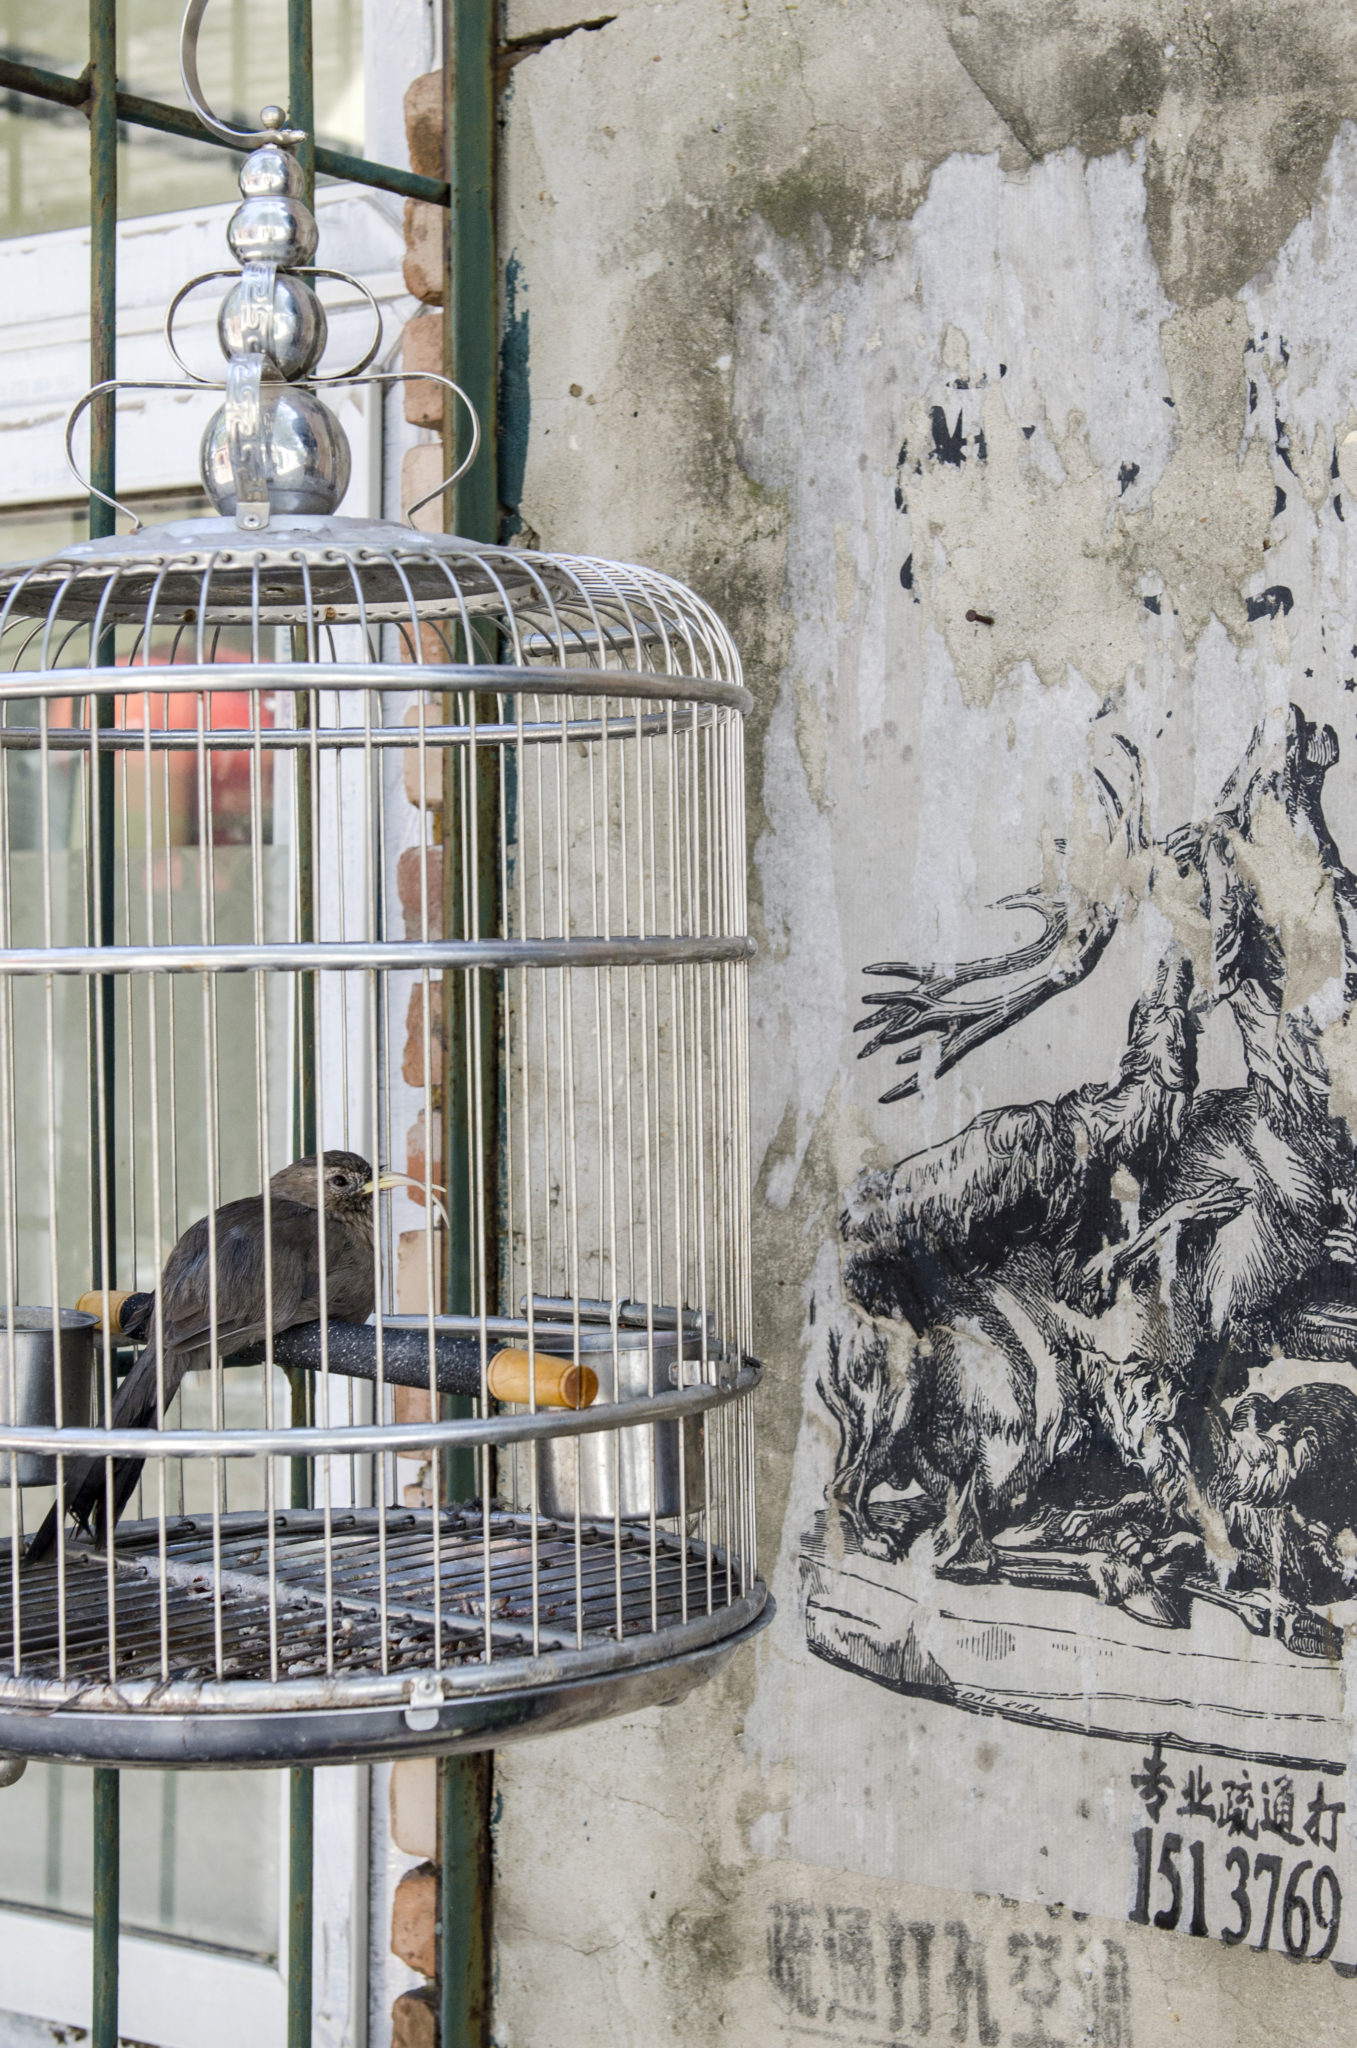 798-Beijing-Art-District-bird-cage